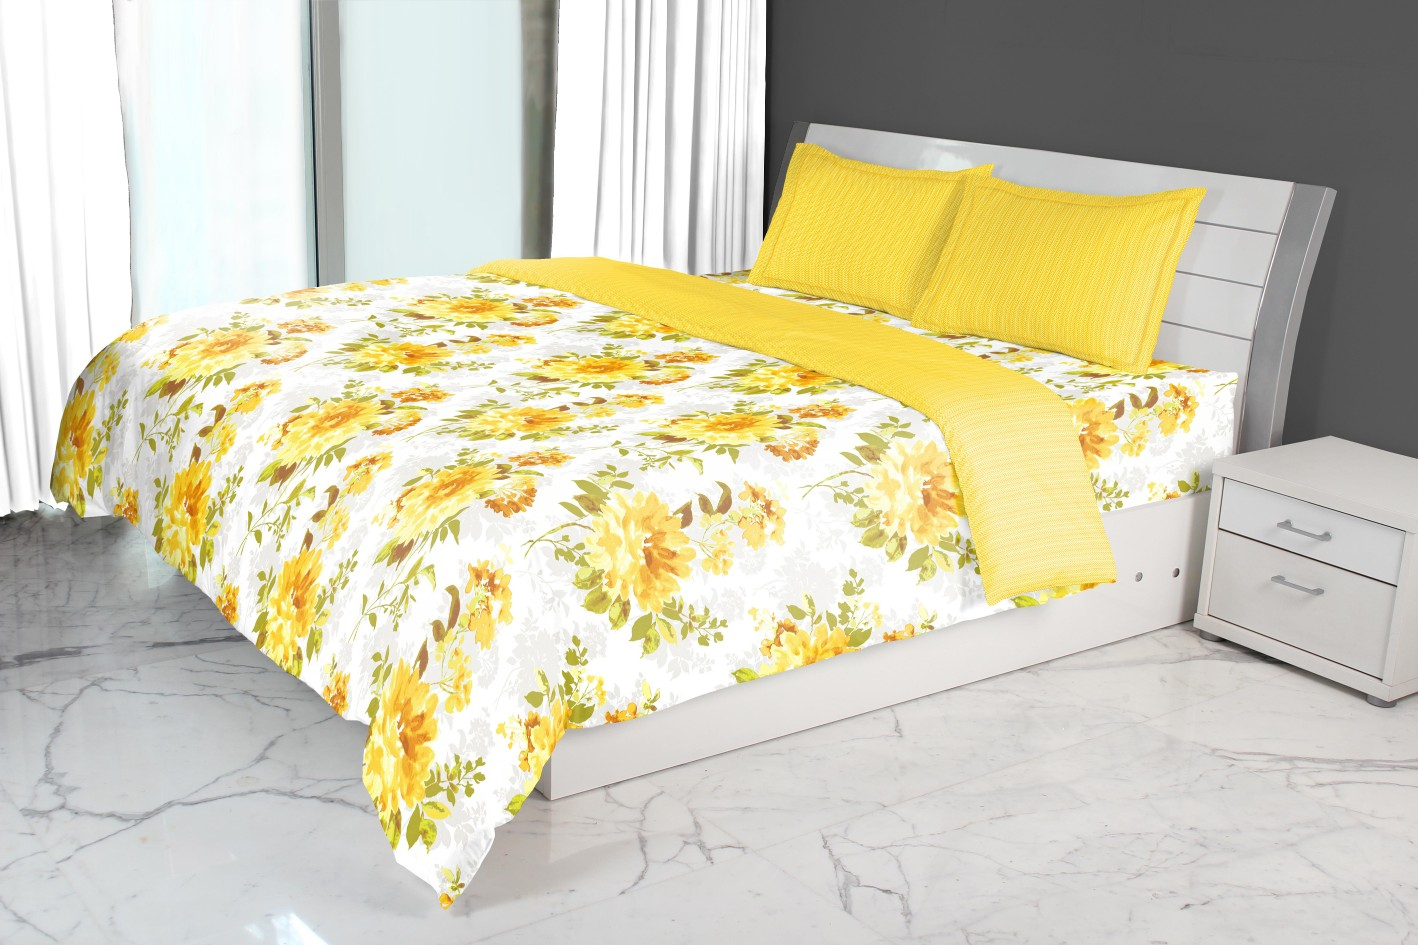 Nora Bloom Printed Double Comforter Mustard Comforters in Mustard Colour by Living Essence